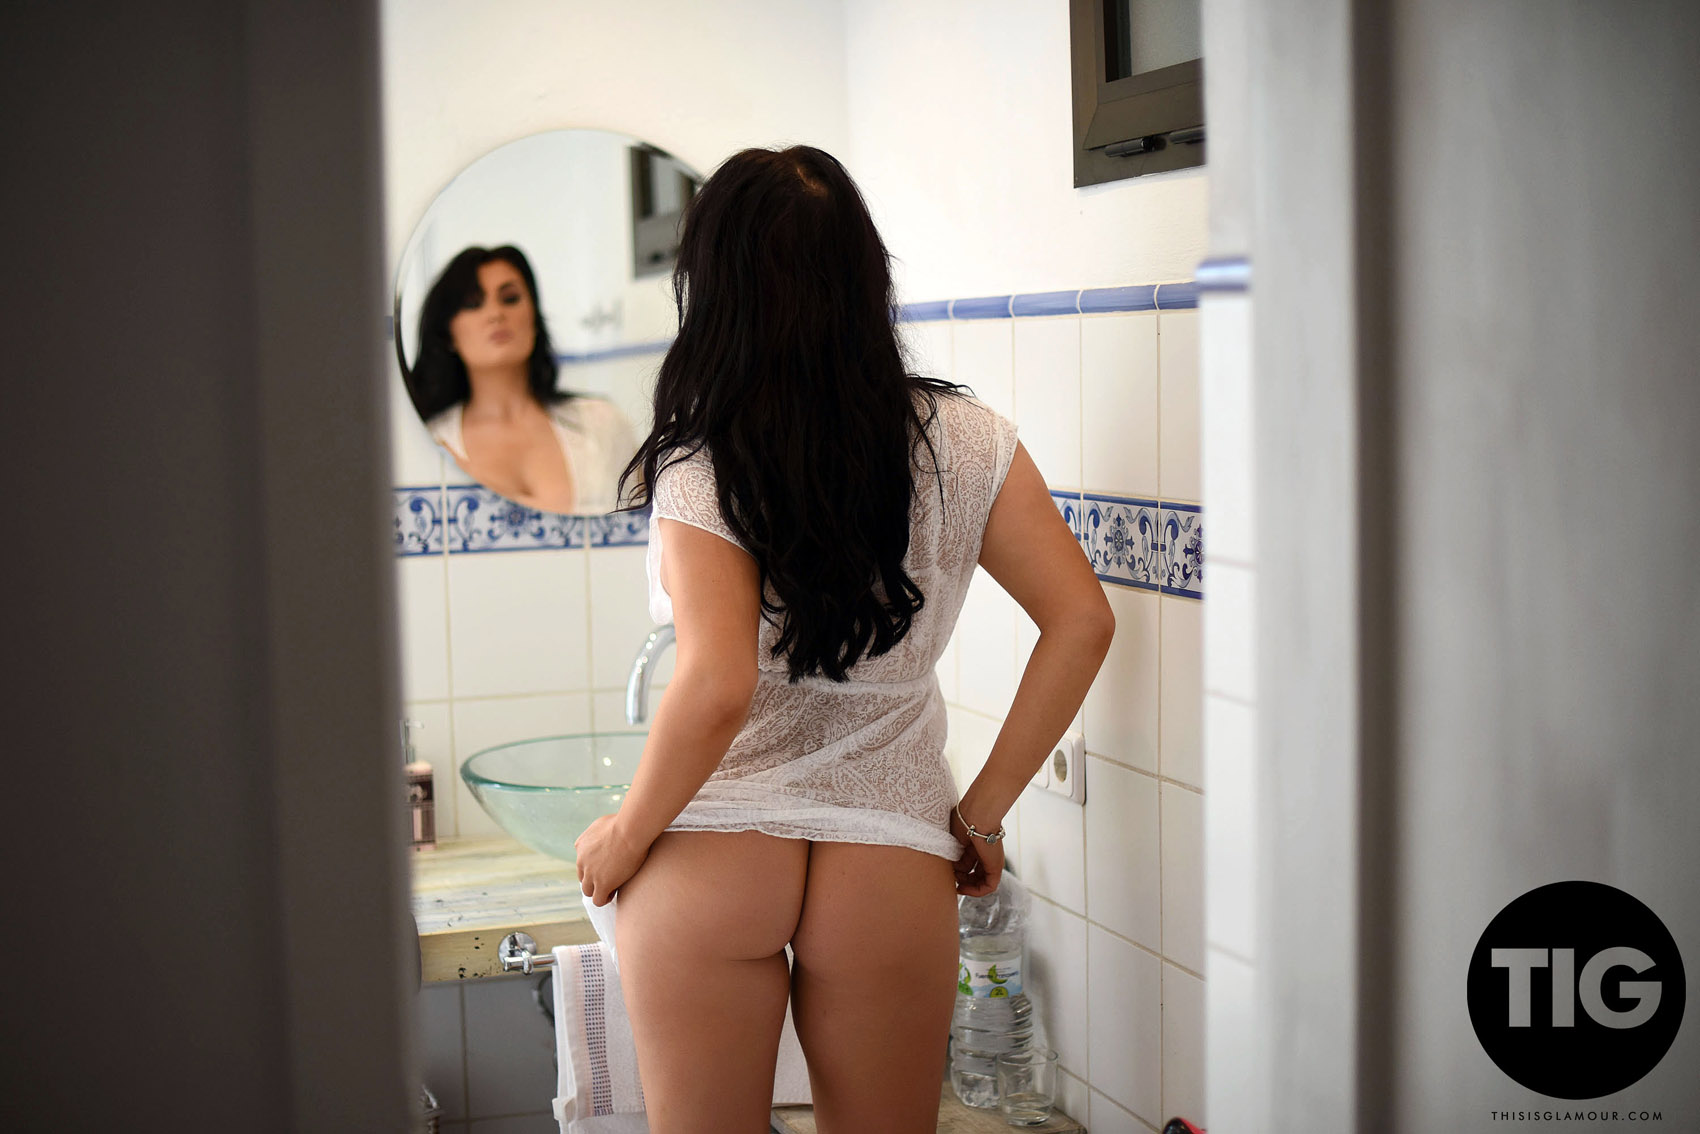 Ashleigh Gee Porno ashleigh gee nude bathroom this is glamour / hotty stop